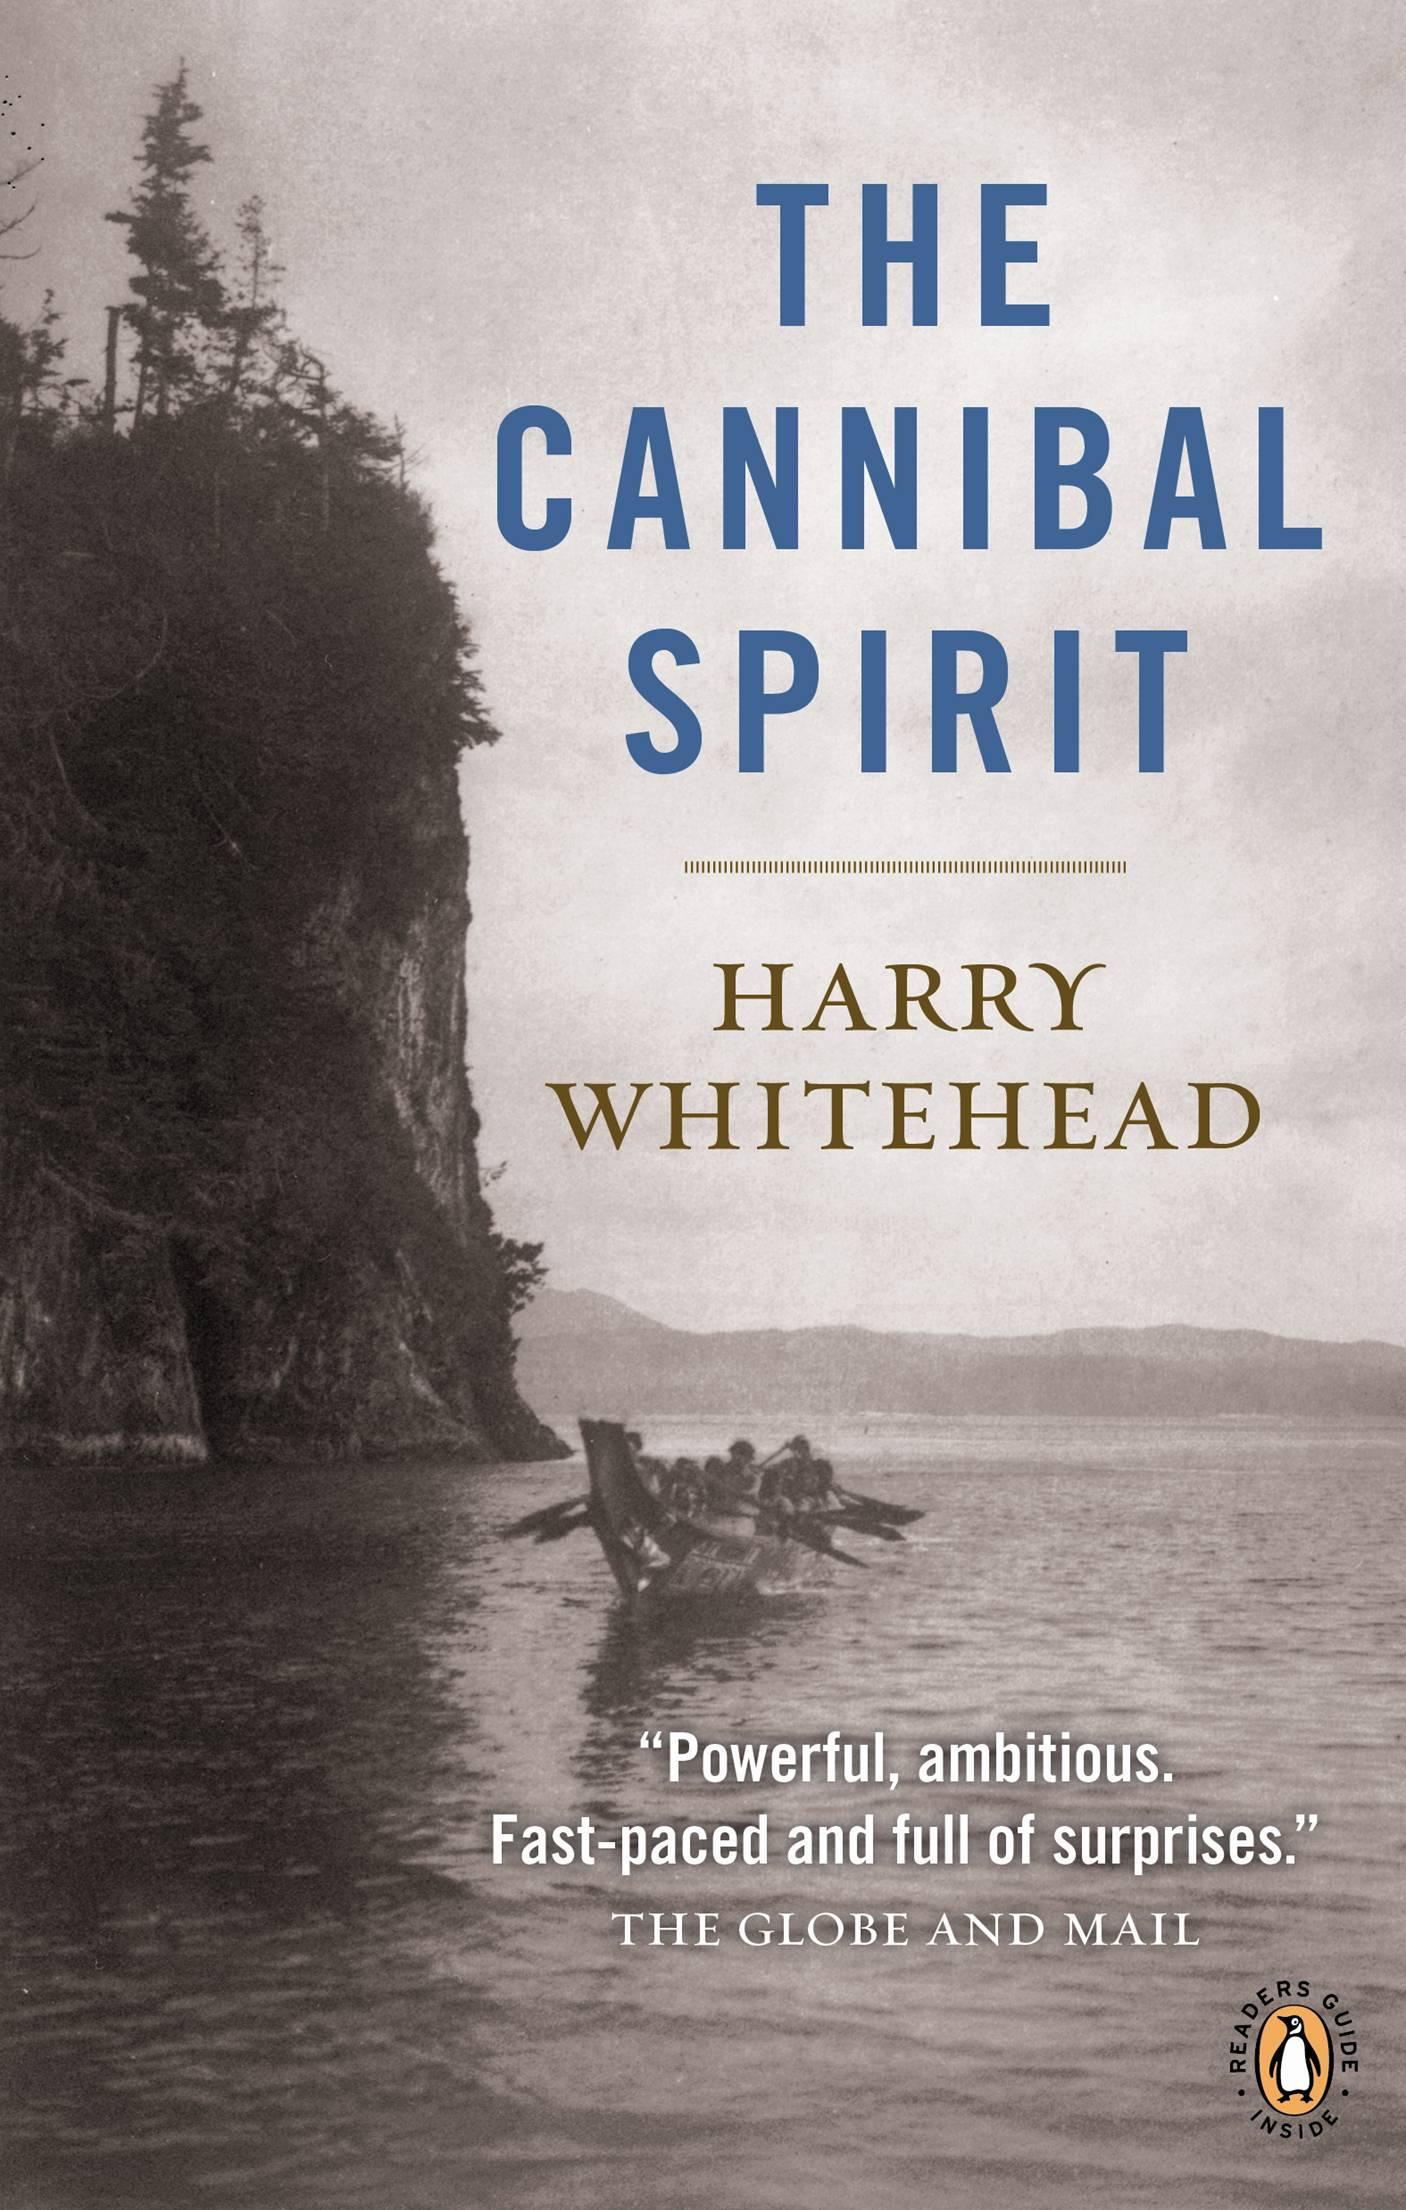 THE CANNIBAL SPIRIT  Literary Fiction, 306 pages Penguin Canada - September 2011  The year is 1900. George Hunt has a white father and a native mother. He is also an assistant to the famous anthropologists Franz Boas and a collector of native artefacts for the white man's museums. Hunt inhabits both worlds but can find no peace in either. Based on a true story.